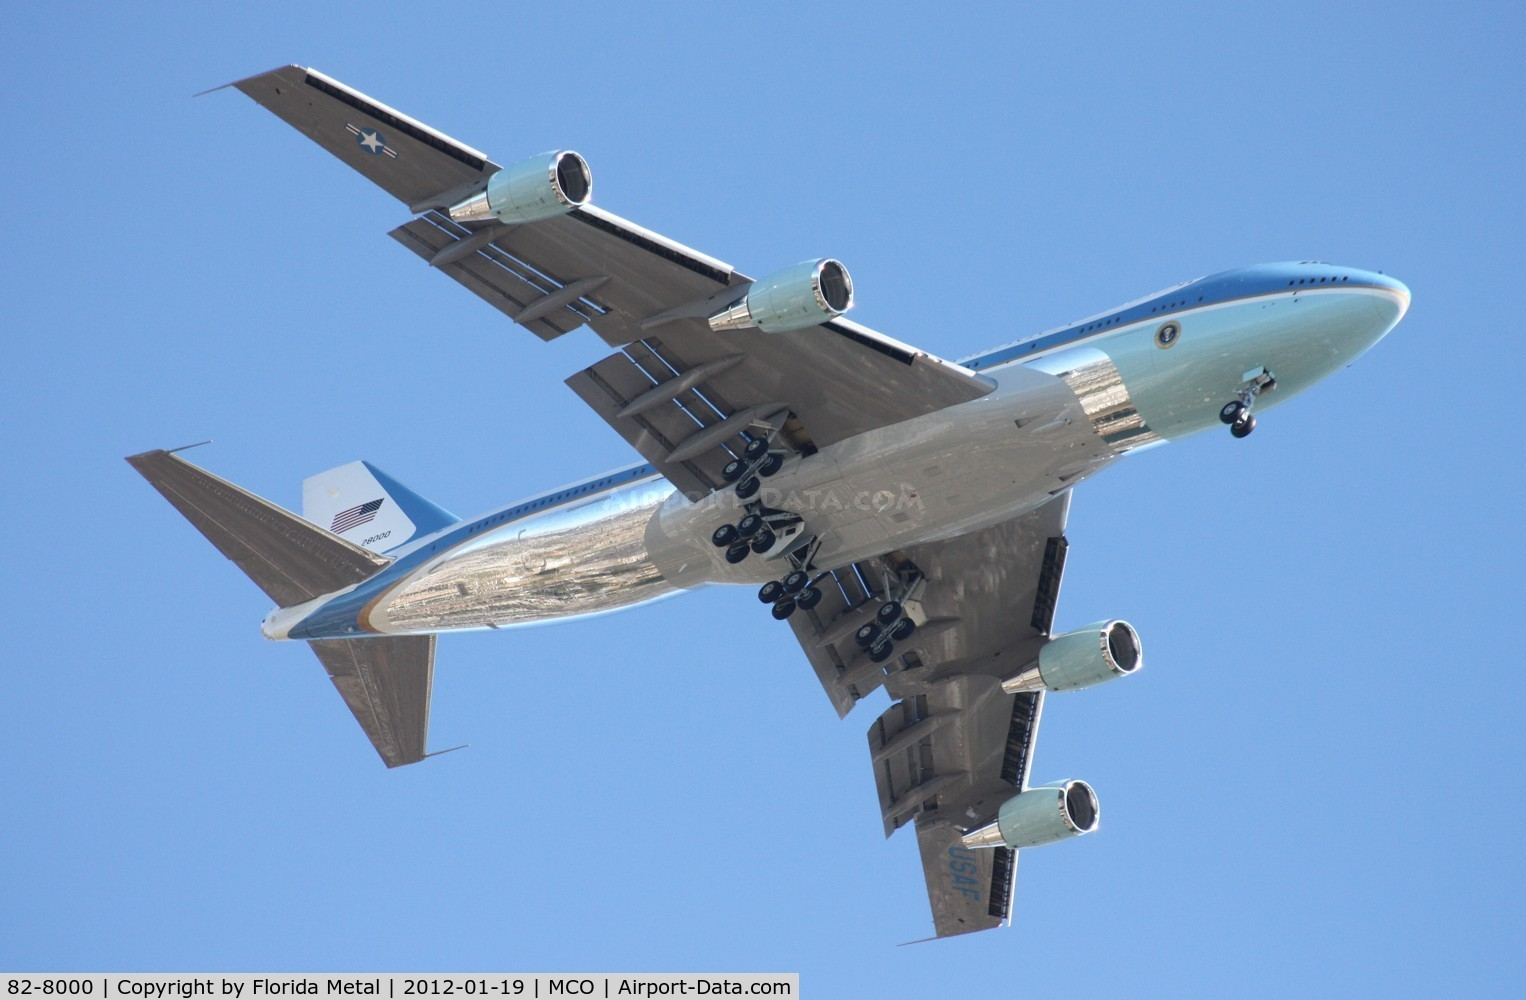 82-8000, 1988 Boeing VC-25A C/N 23824, Air Force One on approach